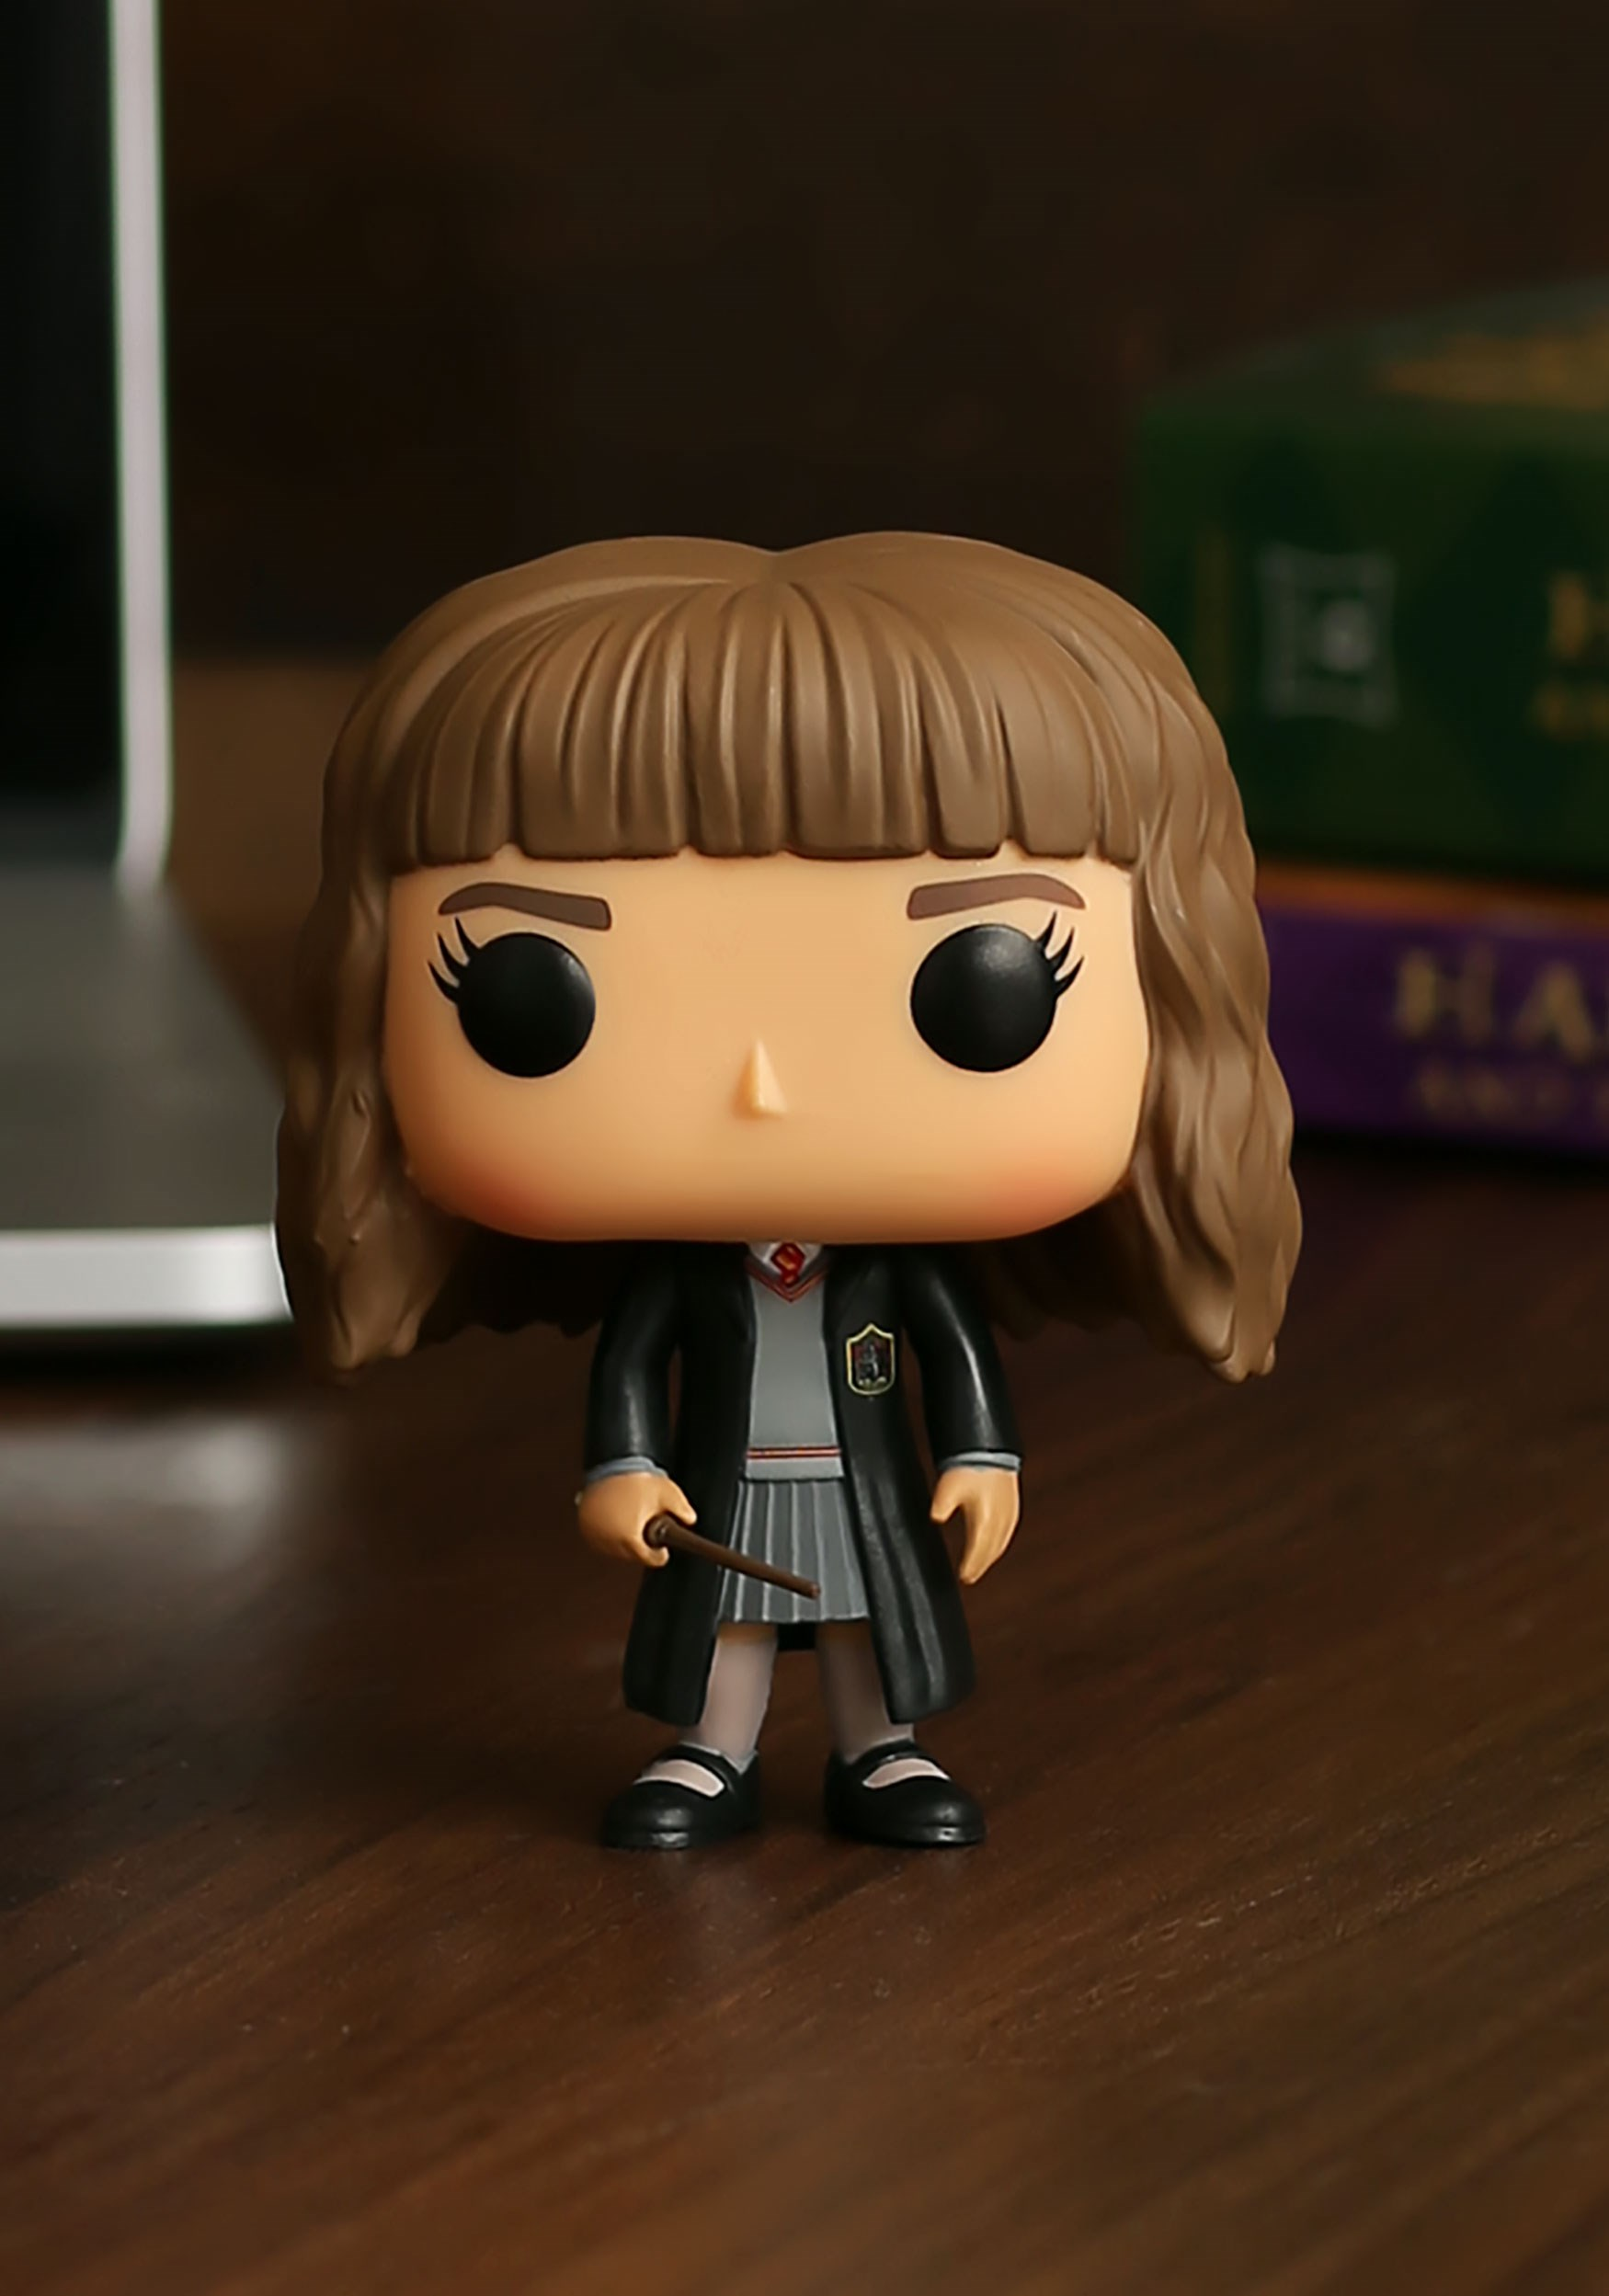 POP! Harry Potter Hermione Granger Vinyl Figure FN5860